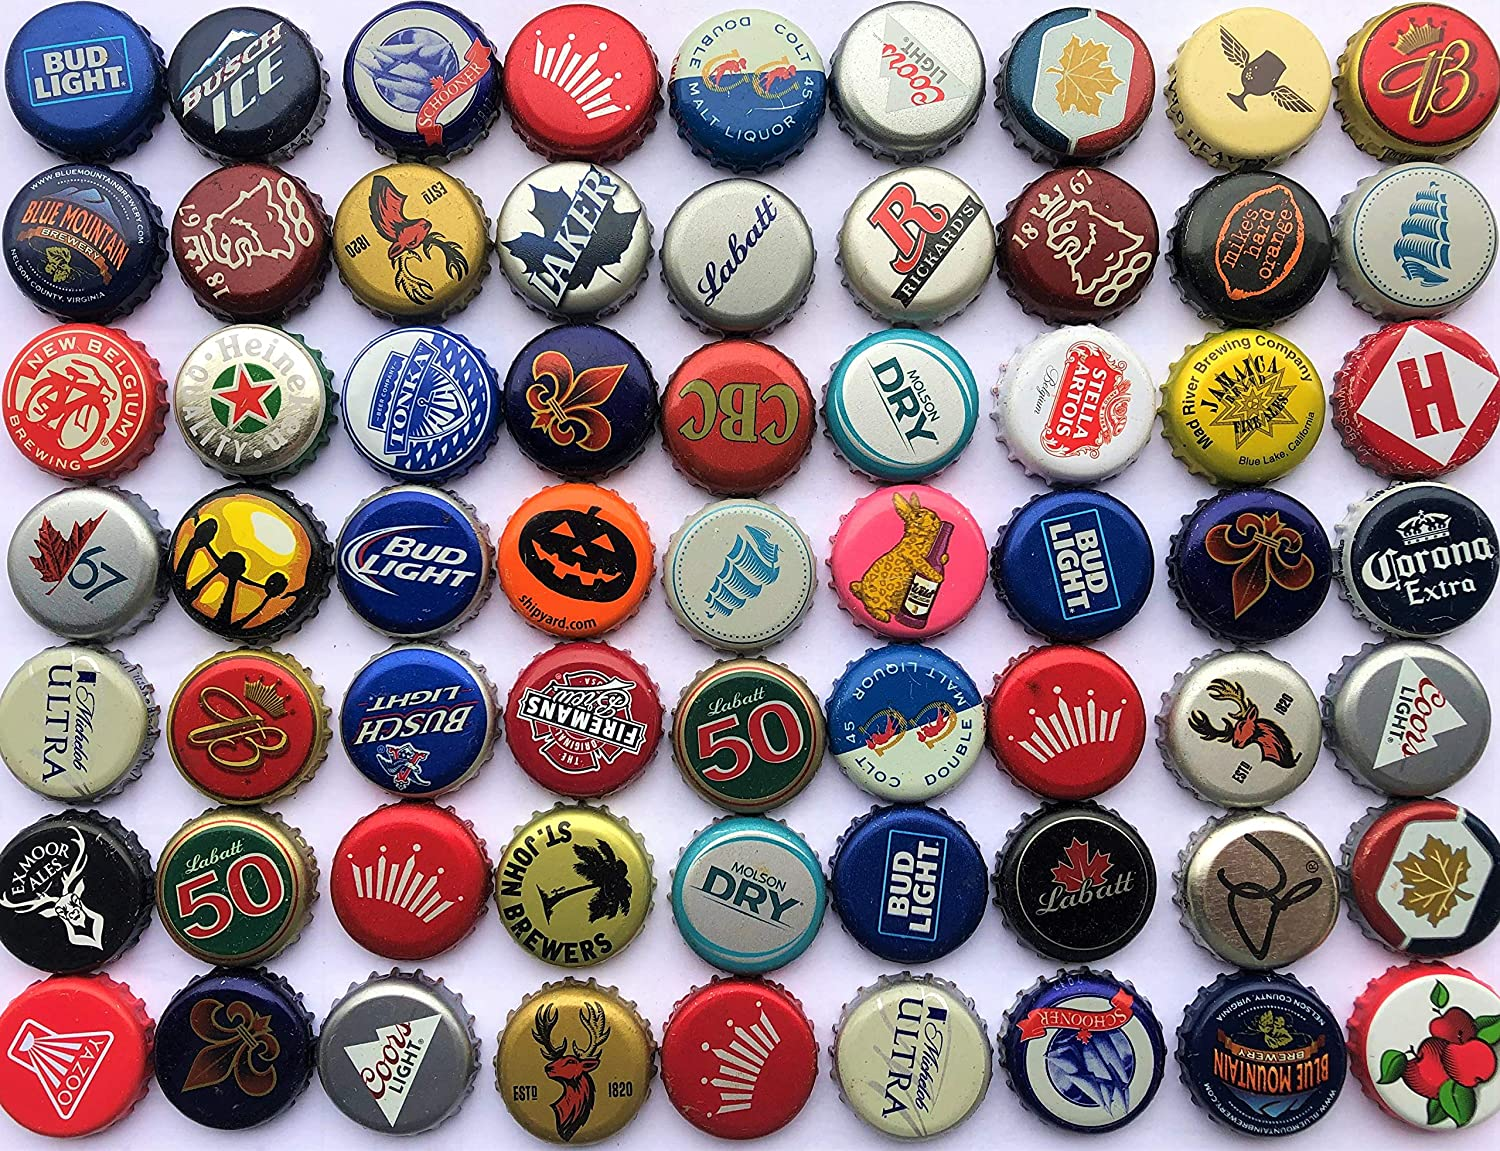 100 Assorted Beer Bottle Caps from North America Including Micro and Macro Breweries